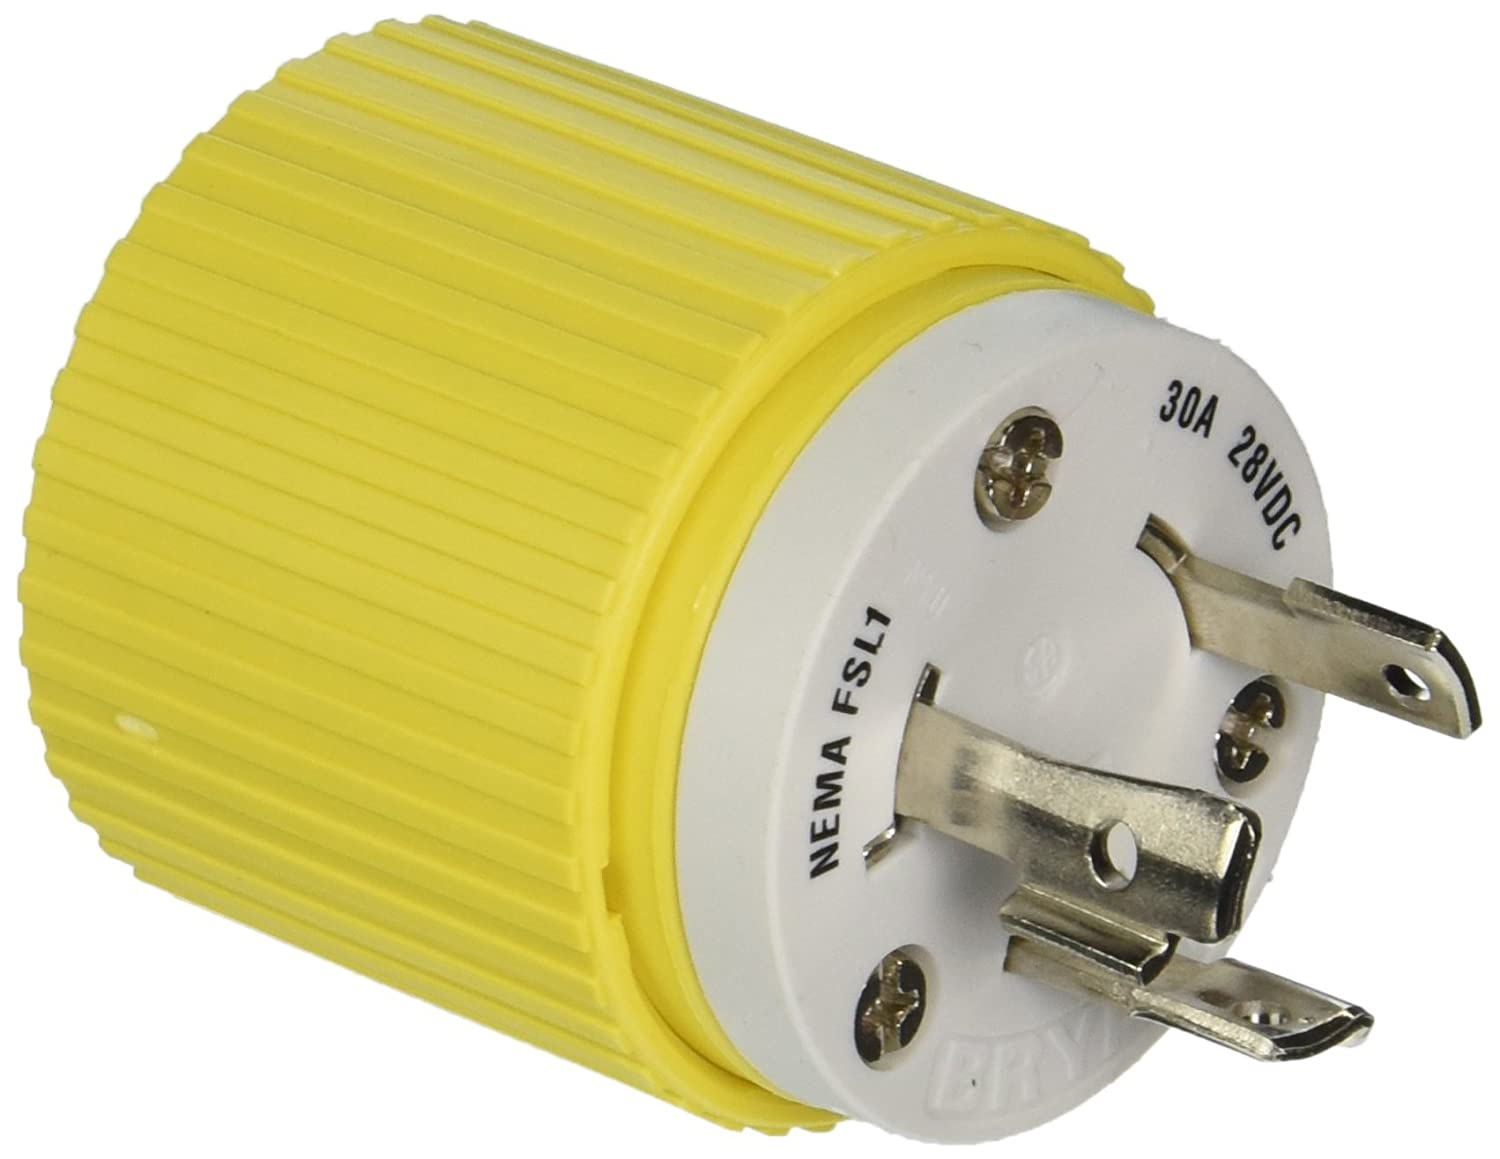 Hubbell Wiring Systems Hbl328dcp Locking Plug 30a 28 Vdc Yellow Cooper Devices 20amp 125volt 3wire Grounding Electric Plugs Industrial Scientific